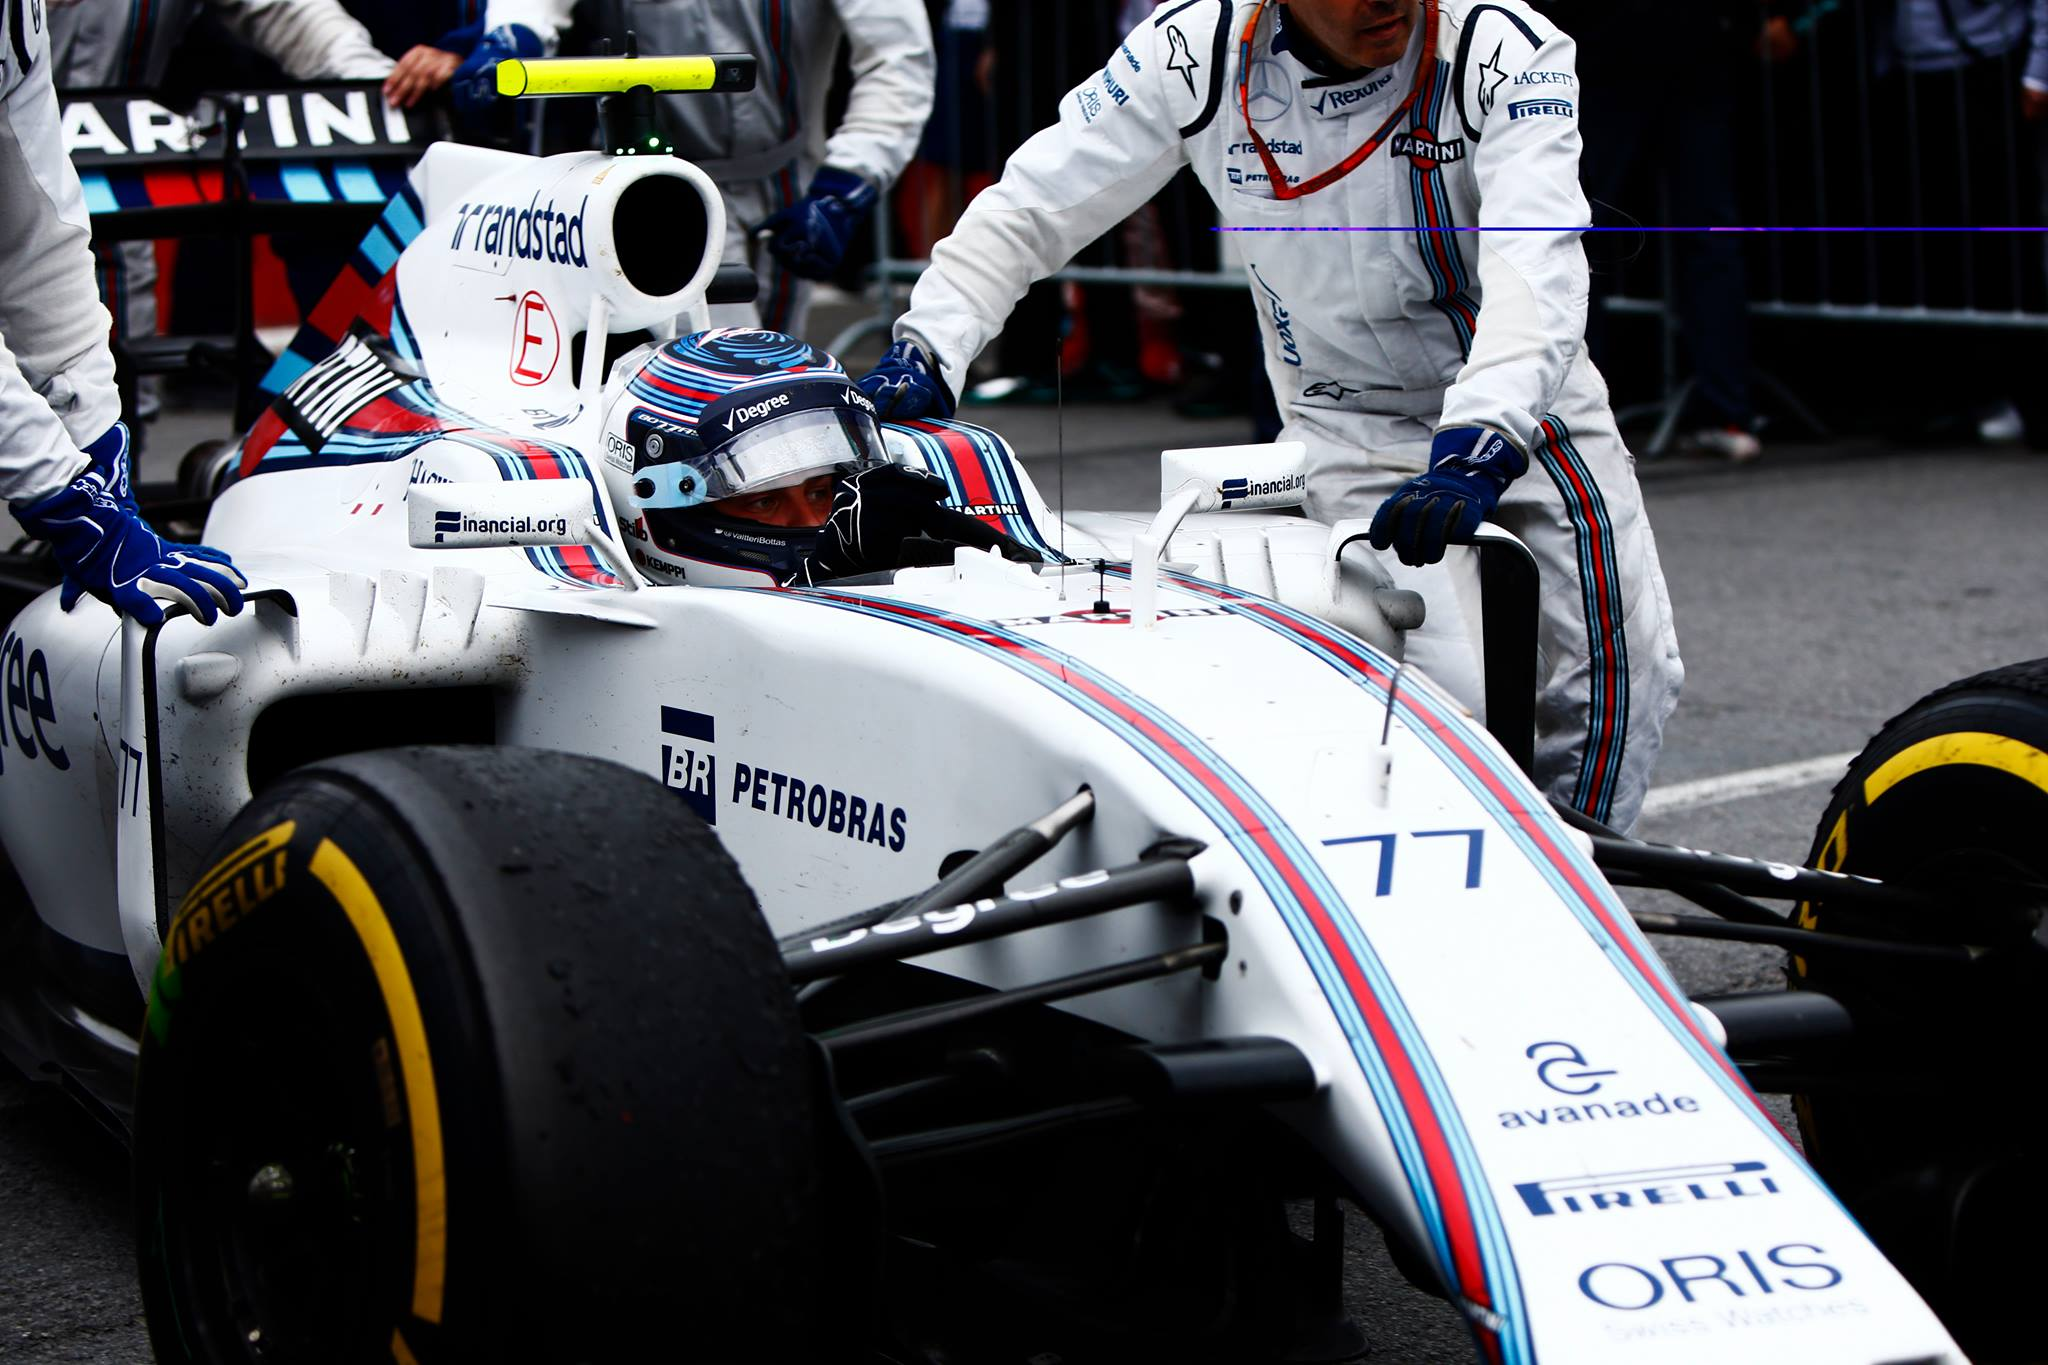 equipo williams f1 gran premio canada